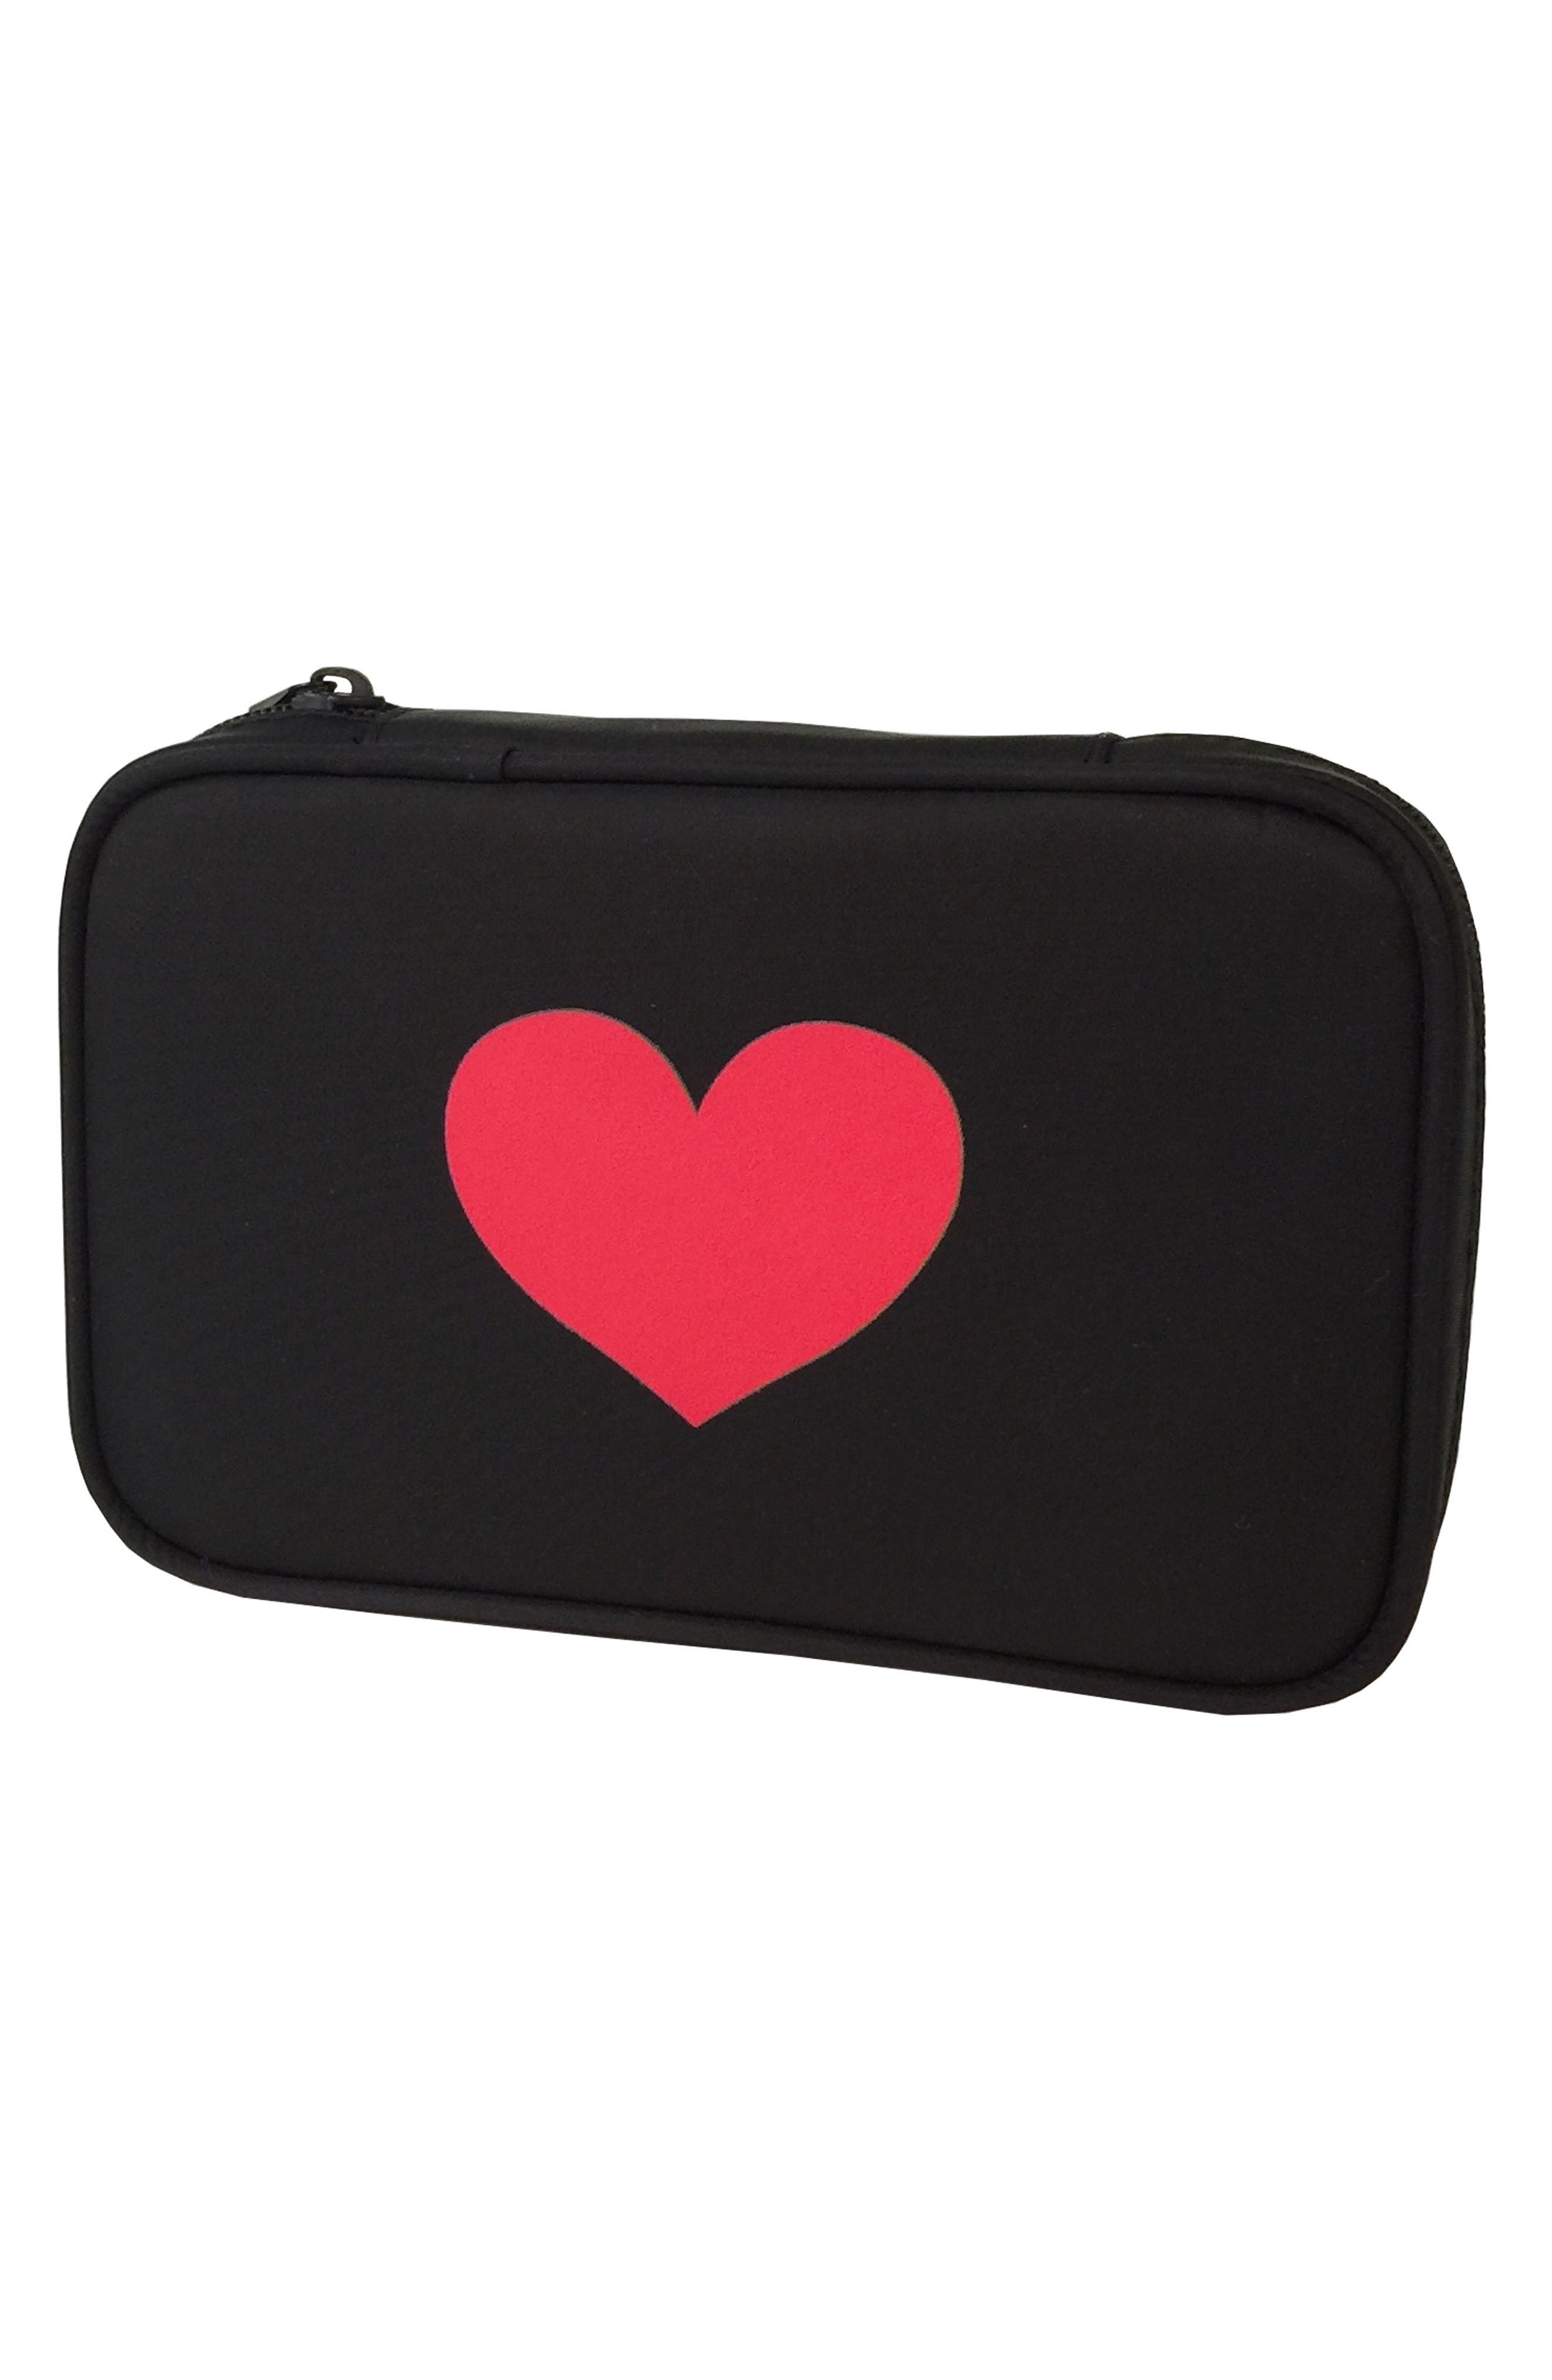 SKITS Clever Heart Tech Case